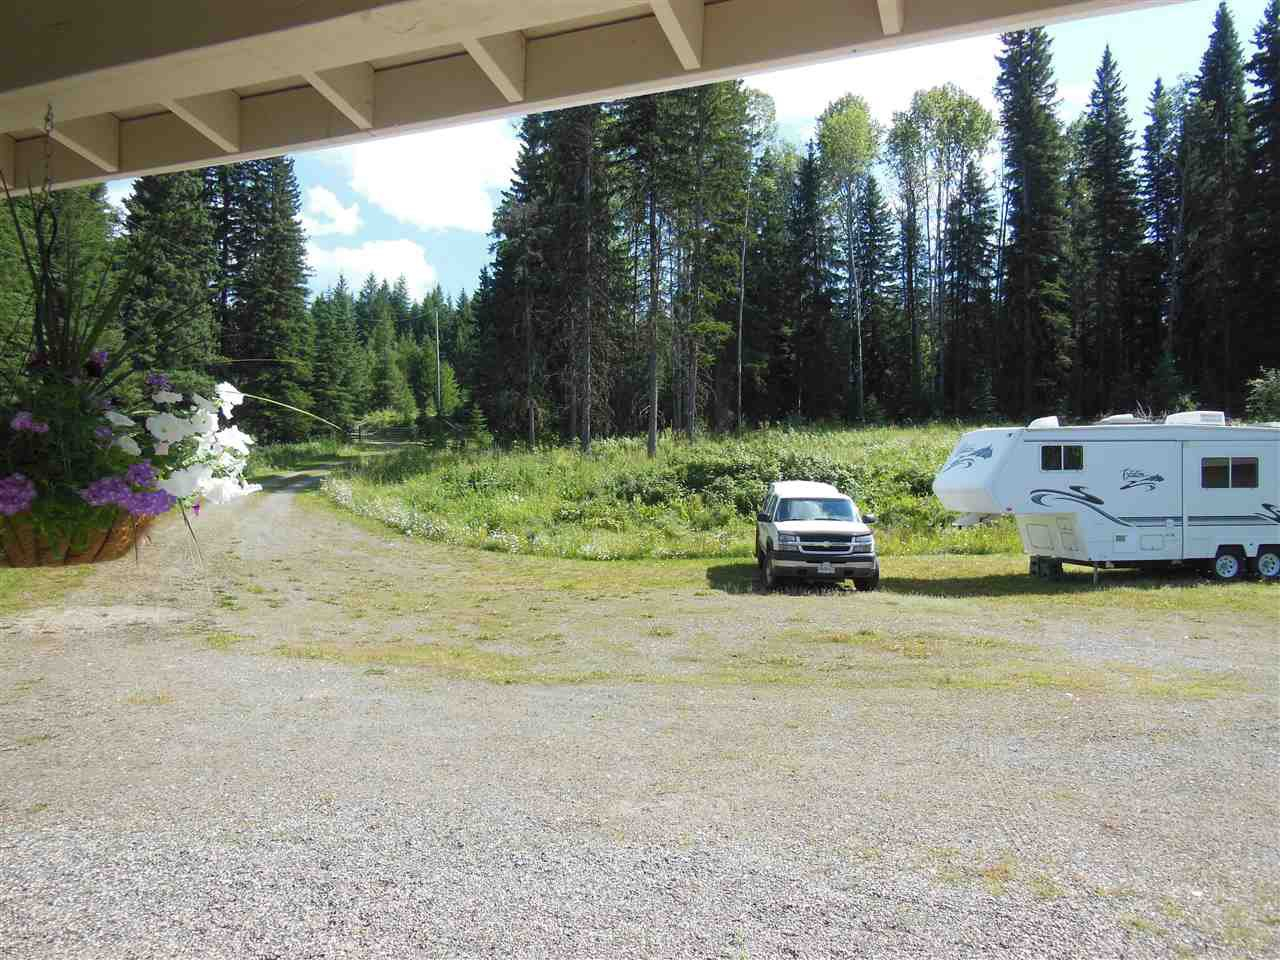 Photo 18: Photos: 3535 WESTWICK PIT Road: 150 Mile House House for sale (Williams Lake (Zone 27))  : MLS®# R2488772